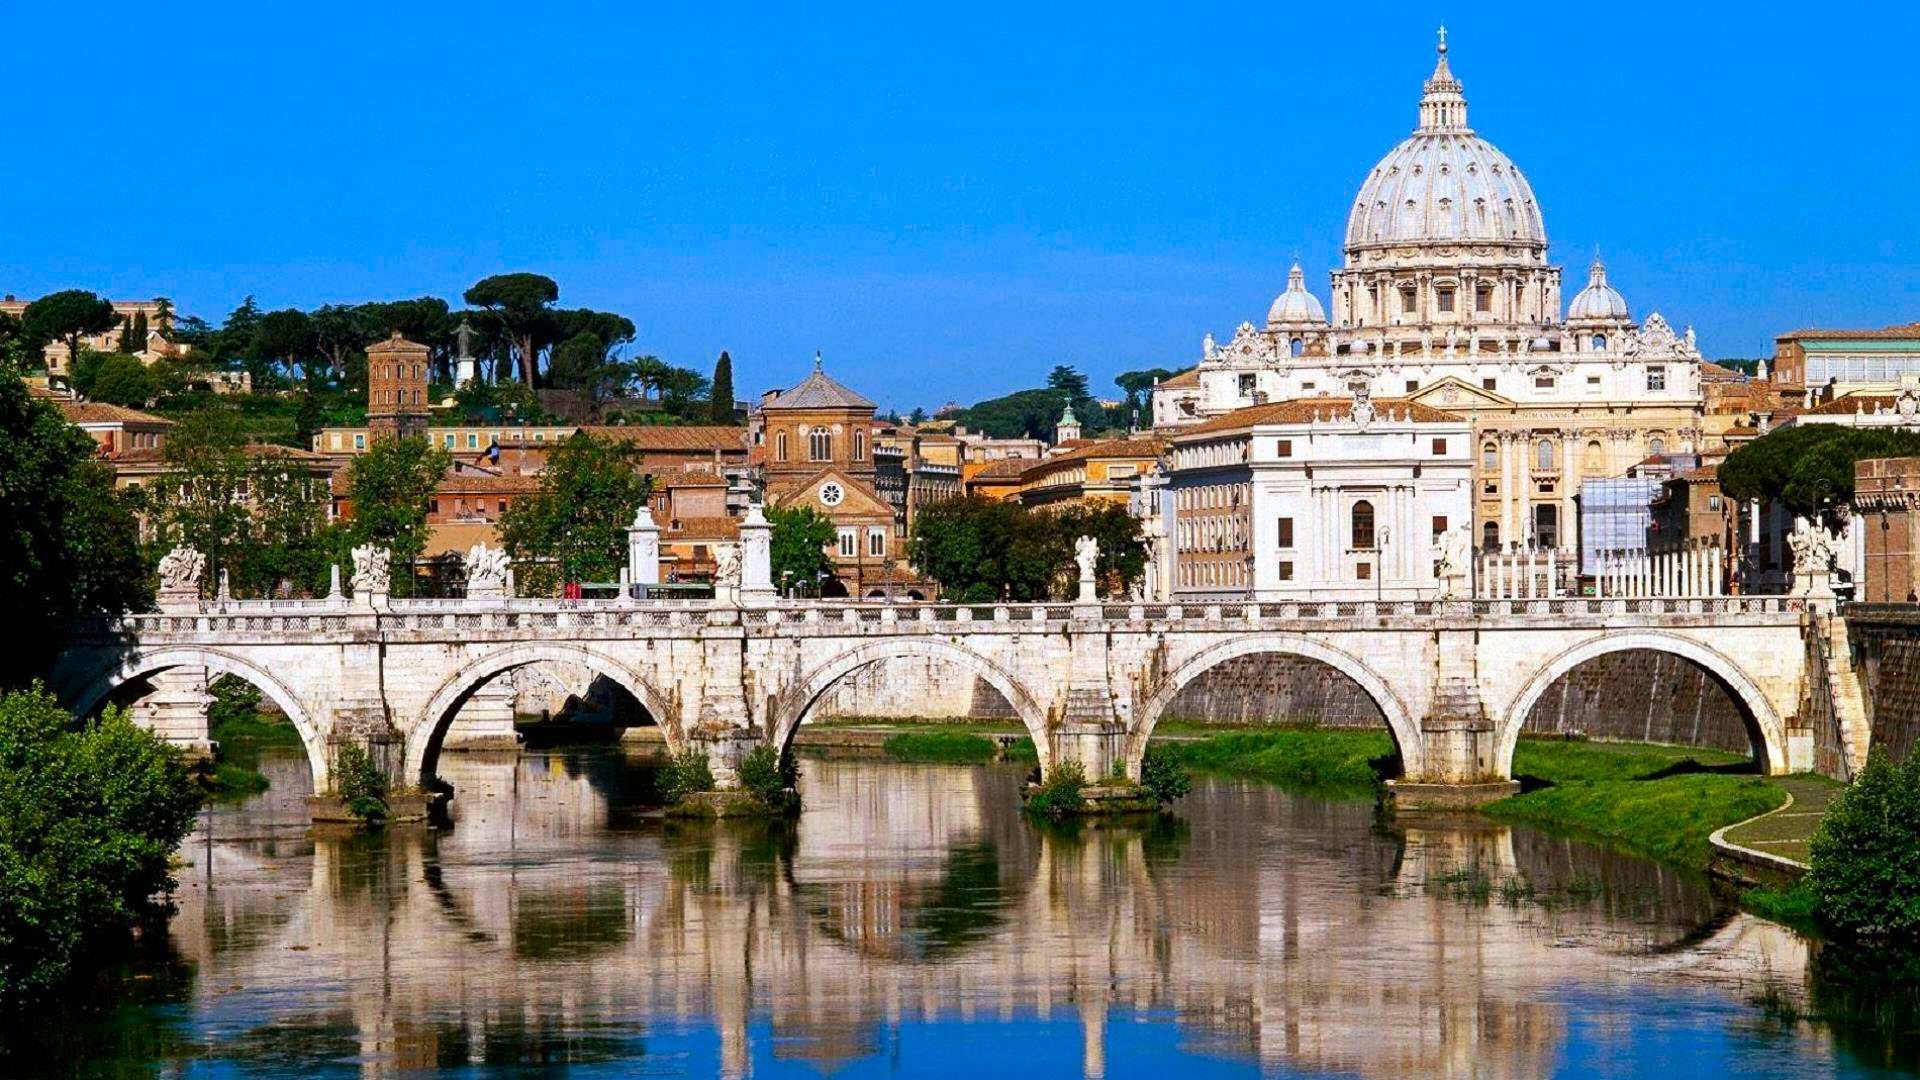 Vatican City Bridge and St Peters